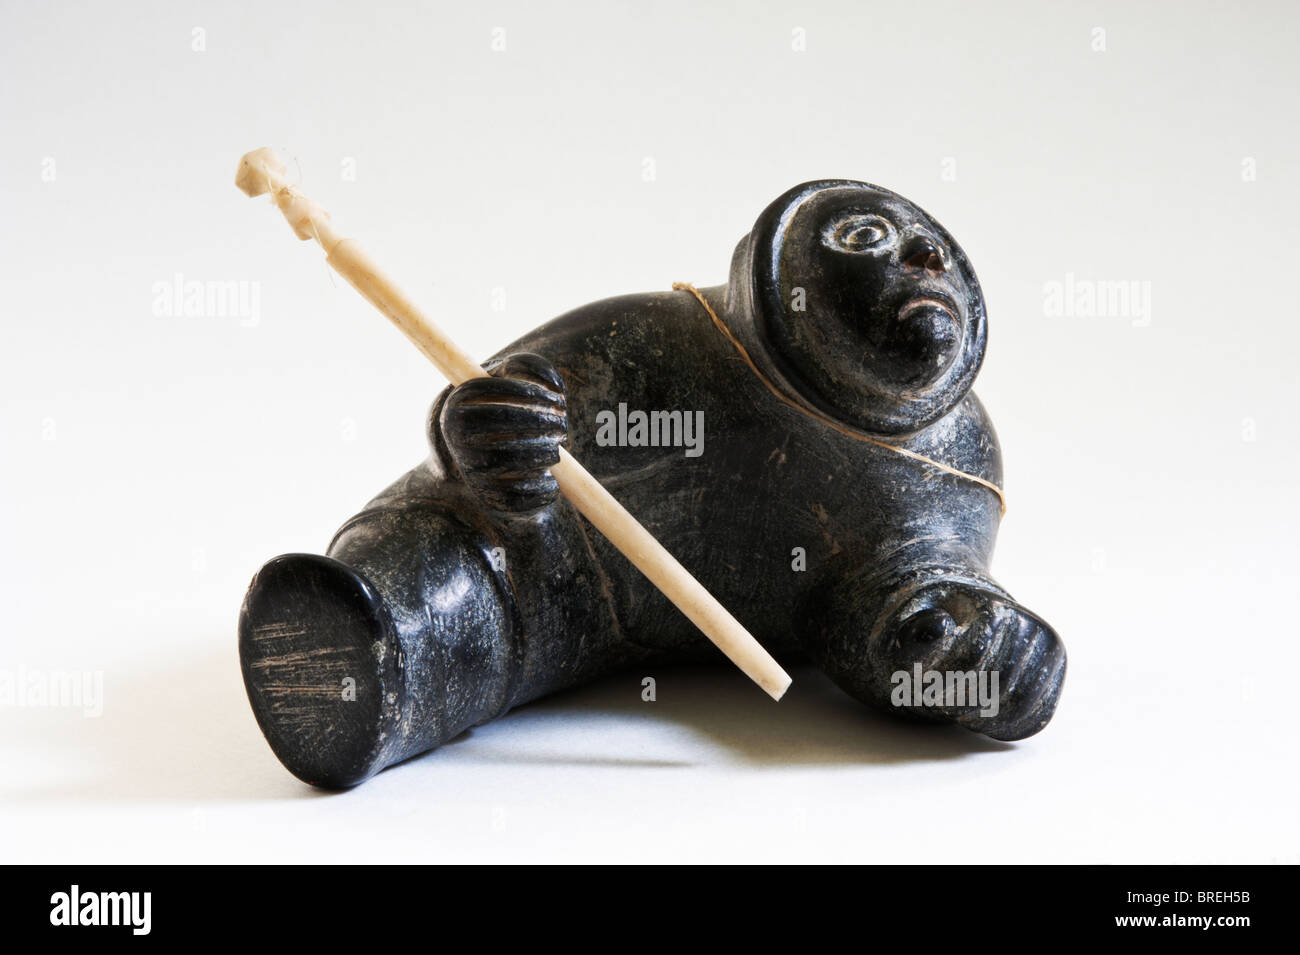 inuit carving stock photos u0026 inuit carving stock images alamy